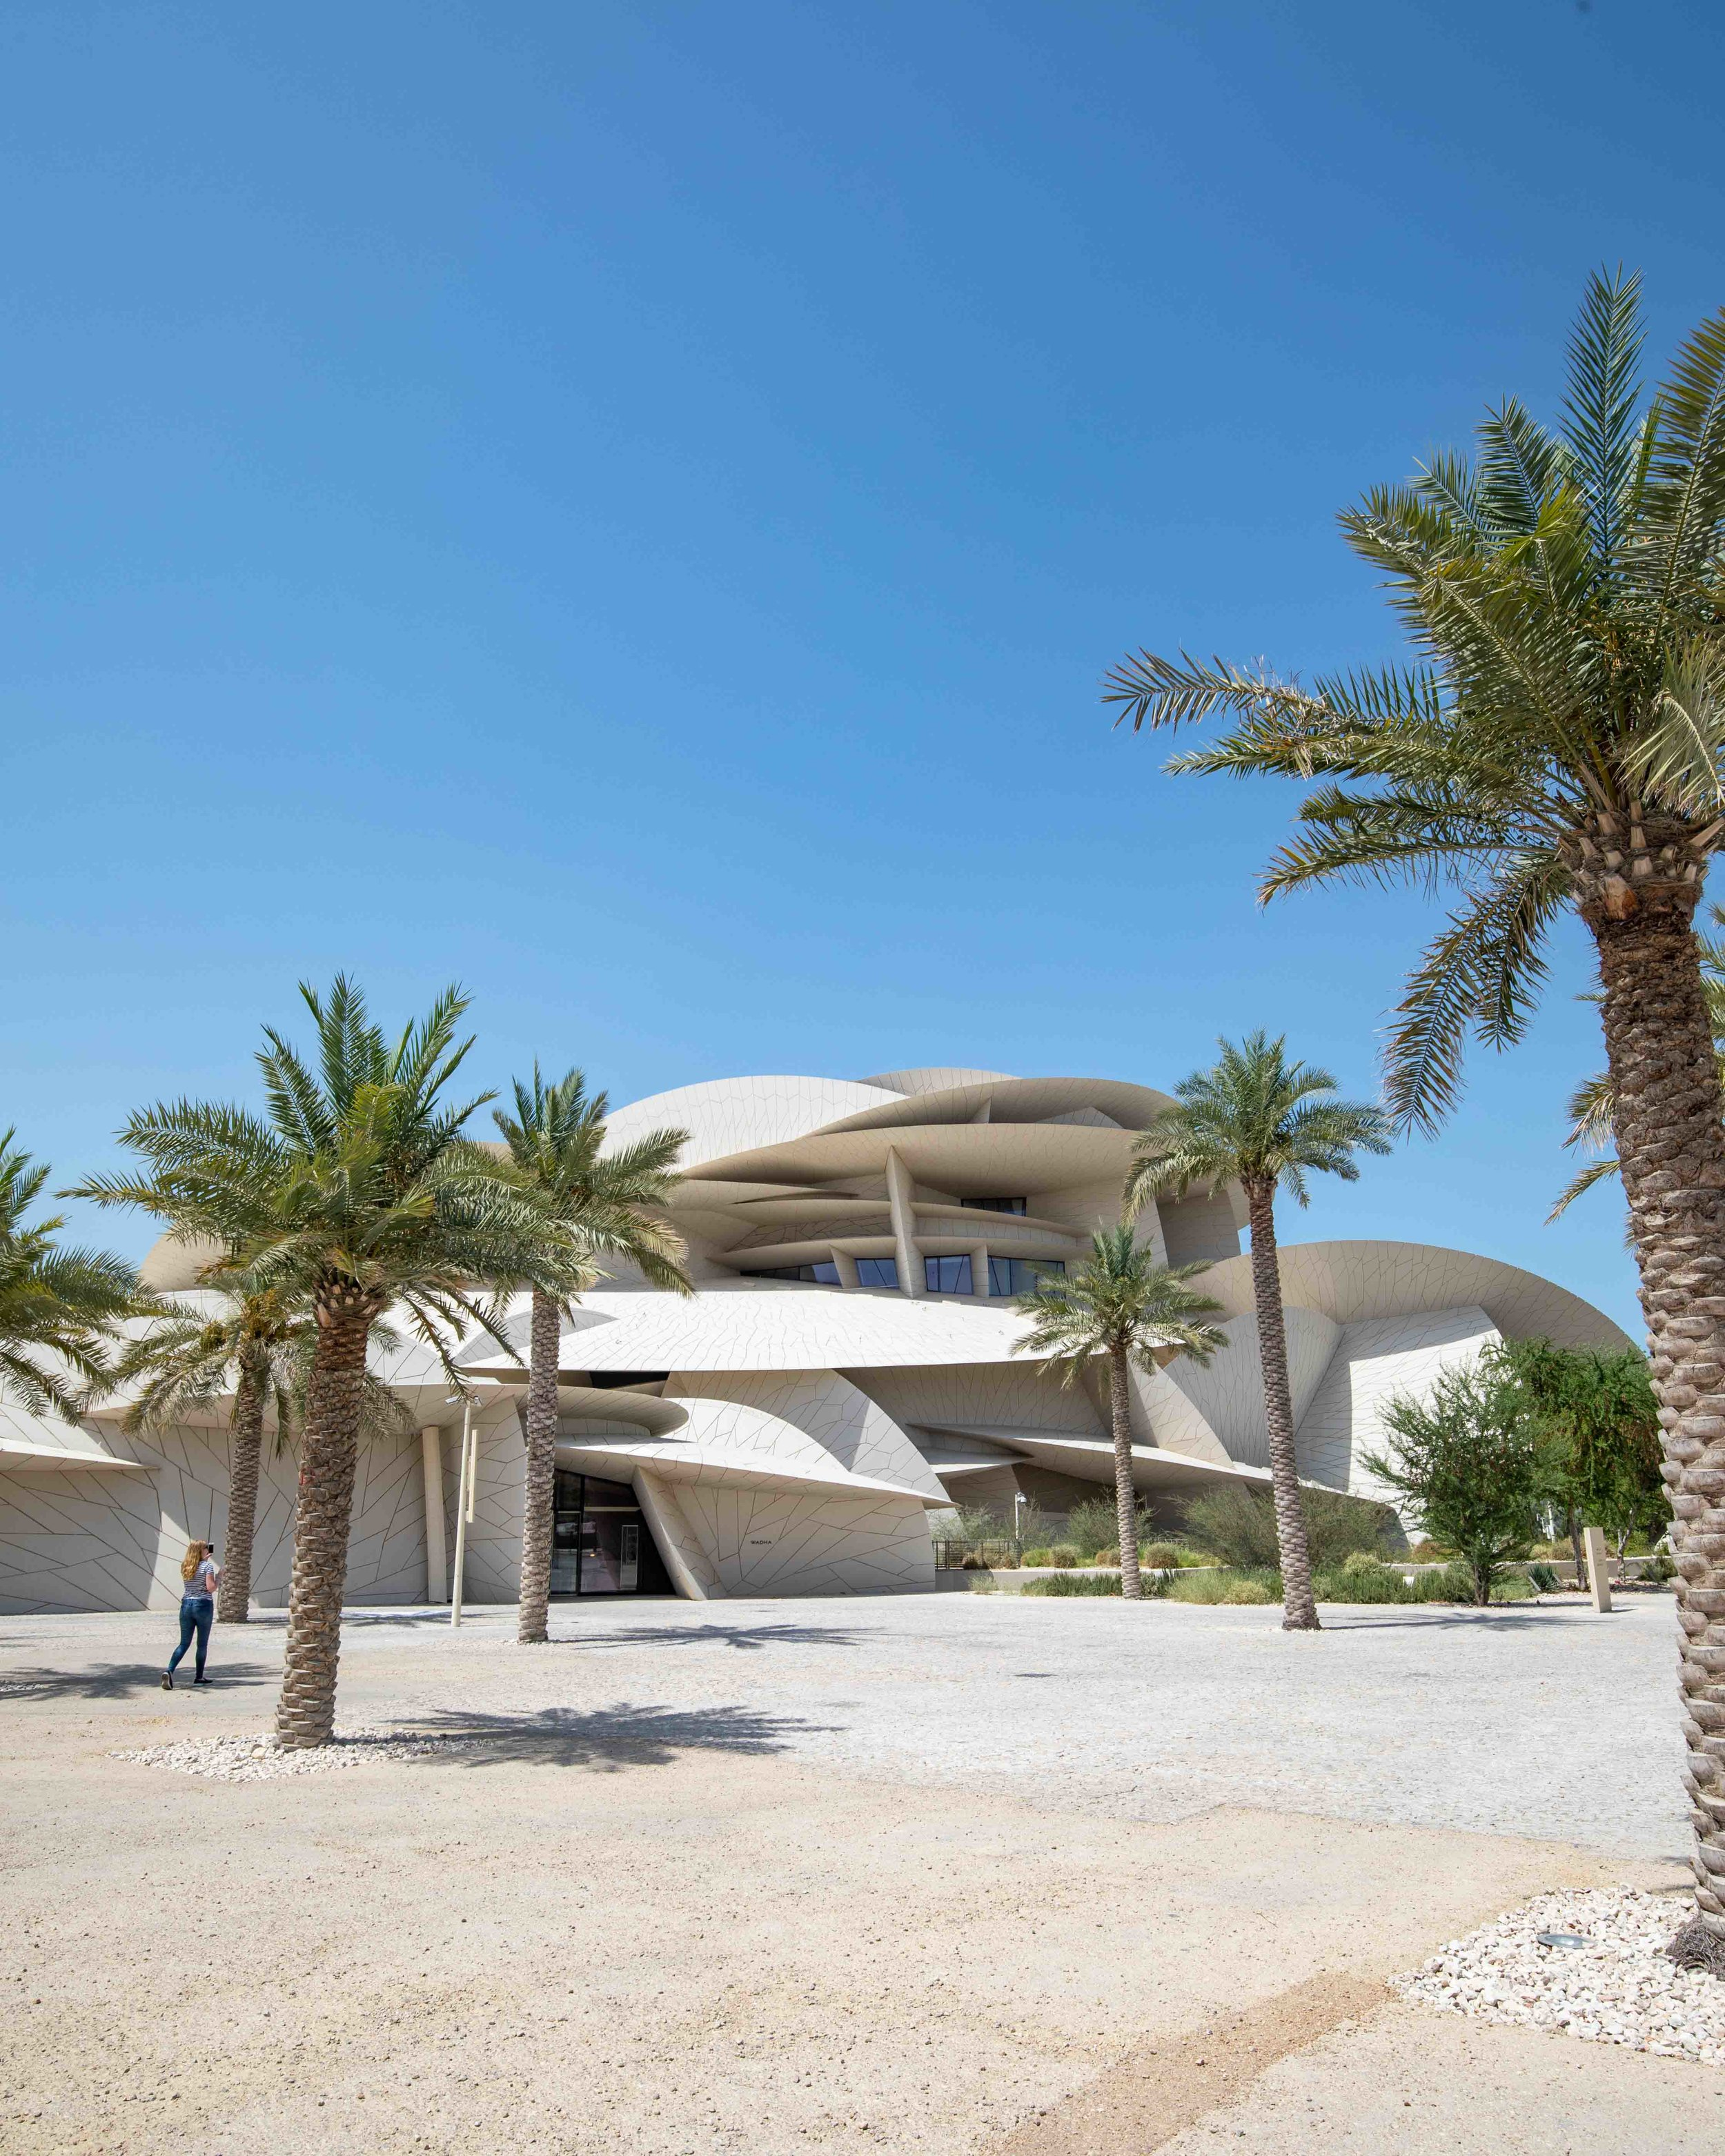 The national museum of Qatar - things to do in Qatar